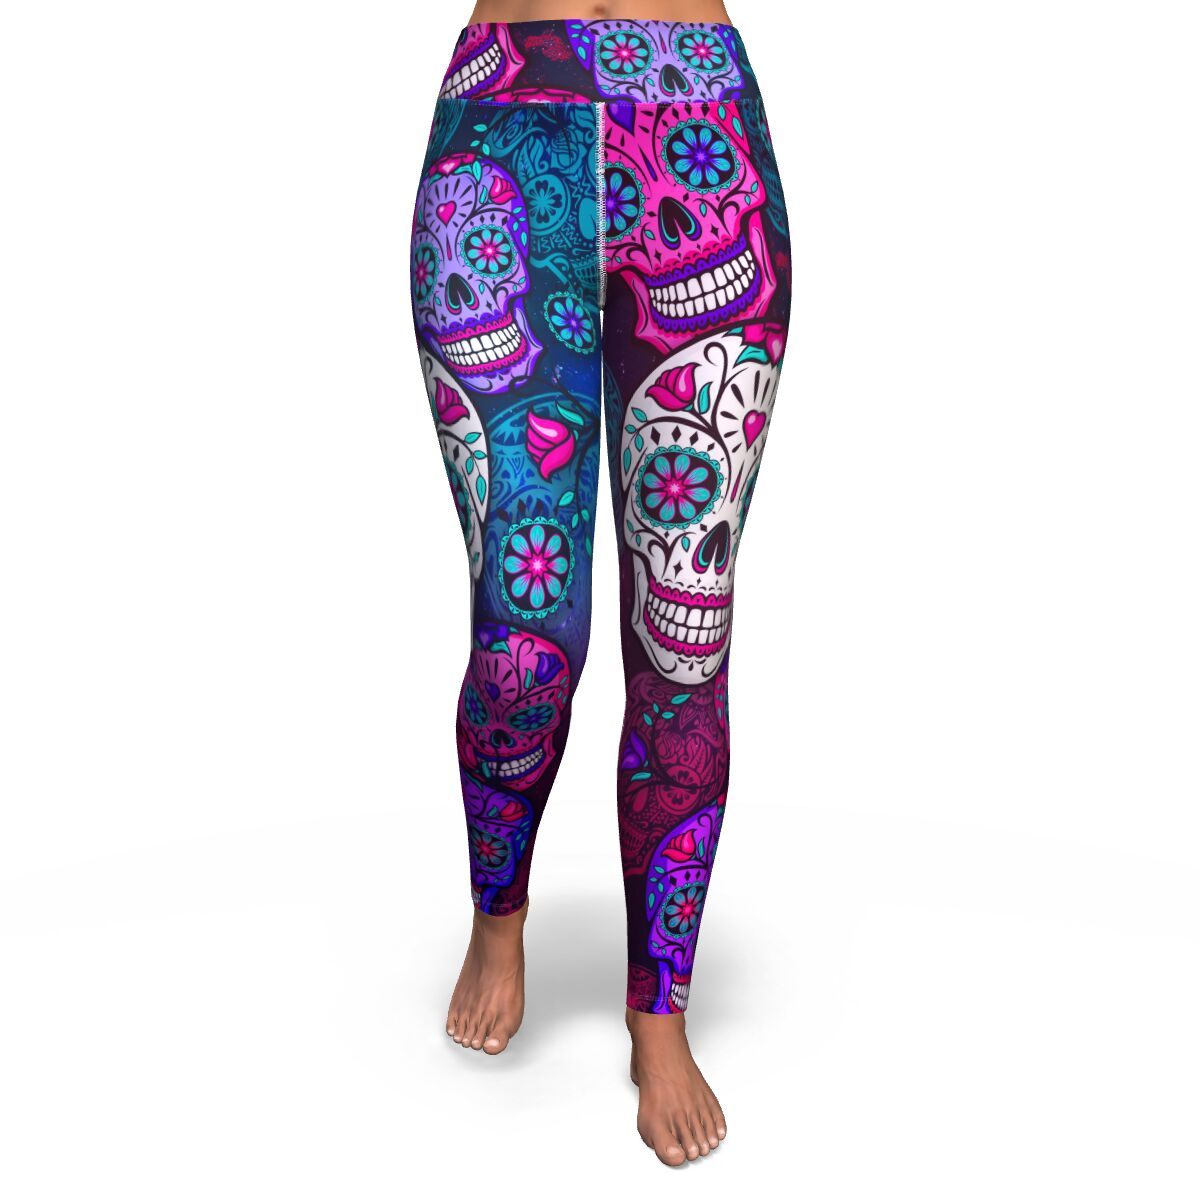 Sugar Skull Women's Yoga Leggings